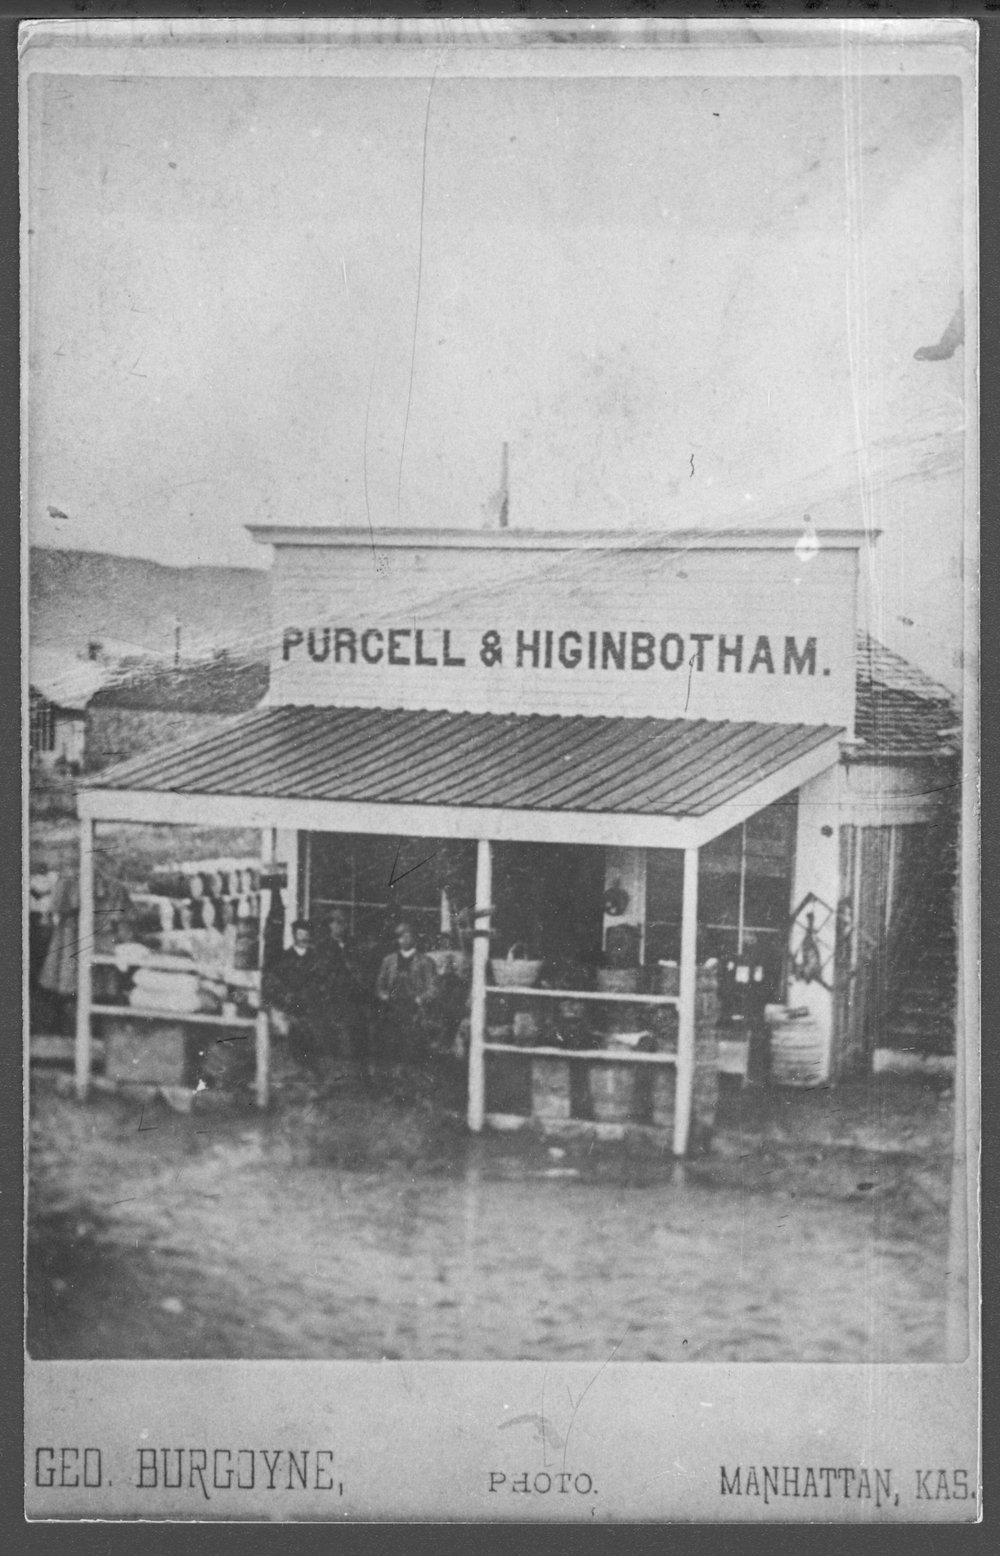 Purcell & Higinbotham store in Manhattan, Kansas